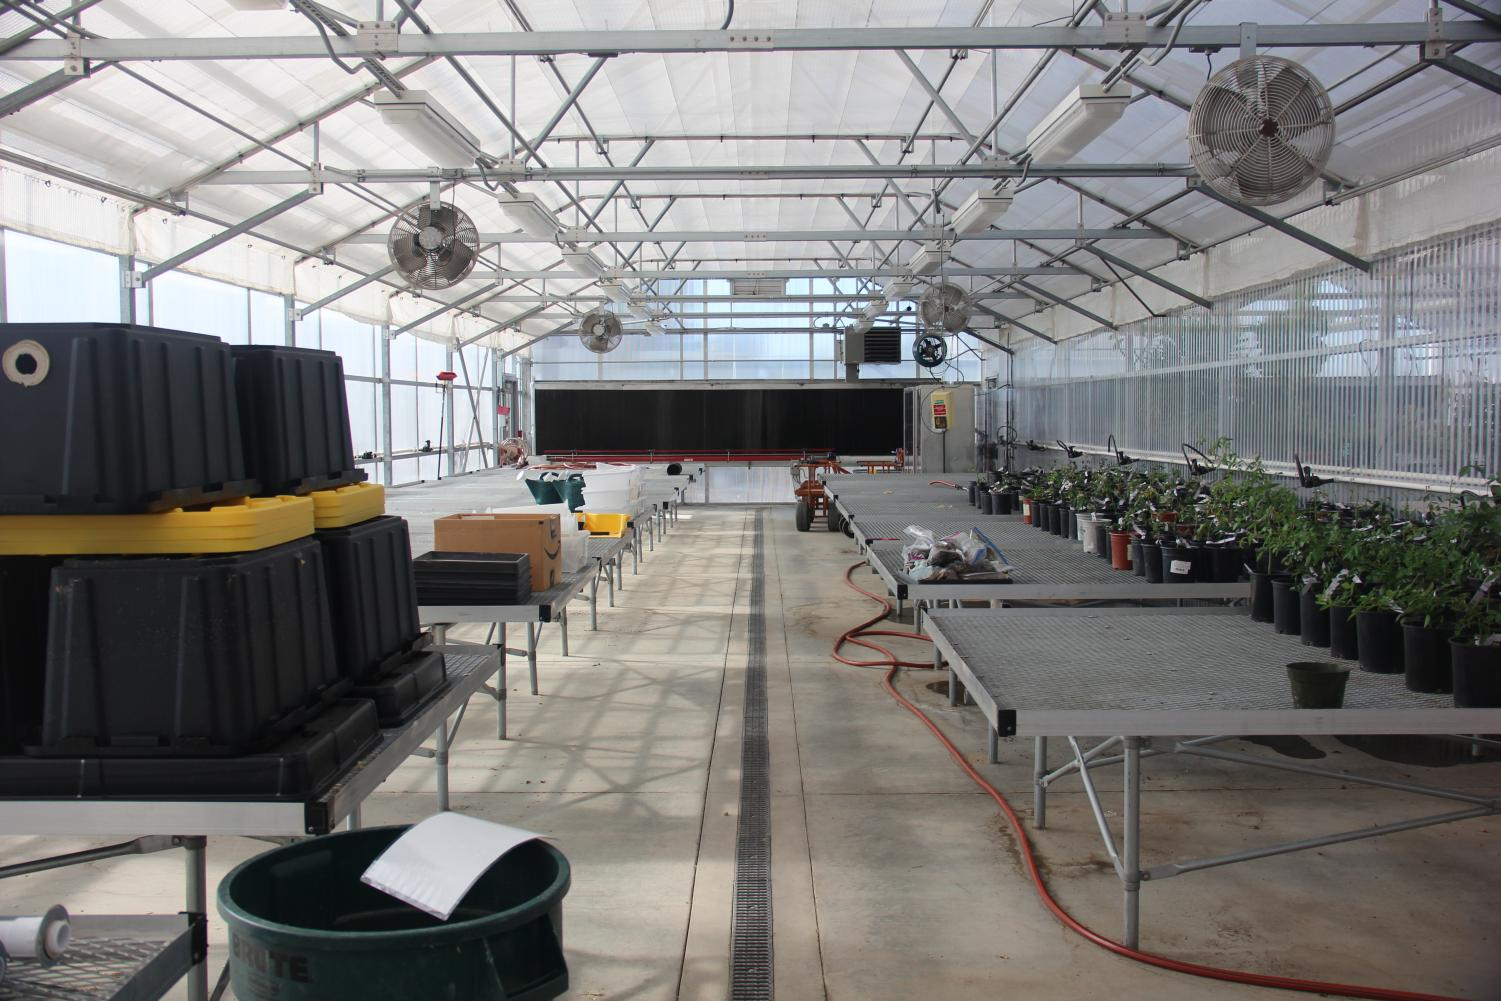 Due to a lack of students enrolling in the program that oversees the greenhouse, the Horticulture department and the Nutrition and Food department have teamed up and develop a Certificate of Proficiency in Plant-Based Nutrition and Sustainable Agriculture. This would also try to revive the greenhouse.